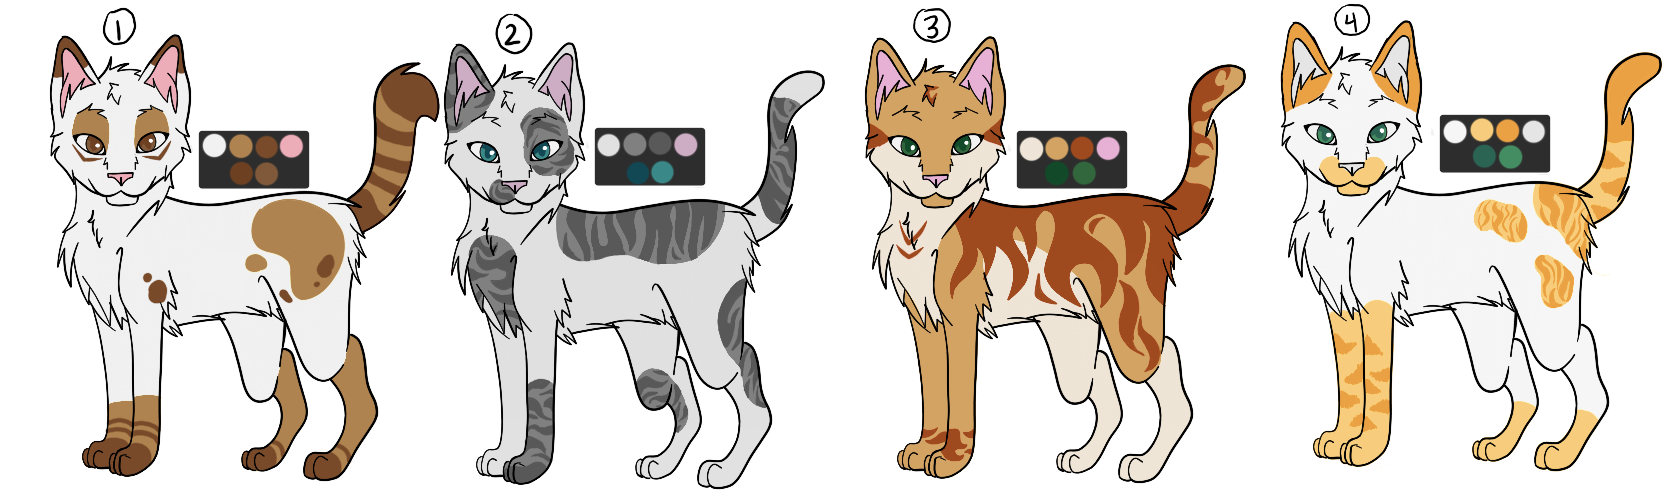 OPEN Cat Adoptables - 1/4 by drawingwolf17